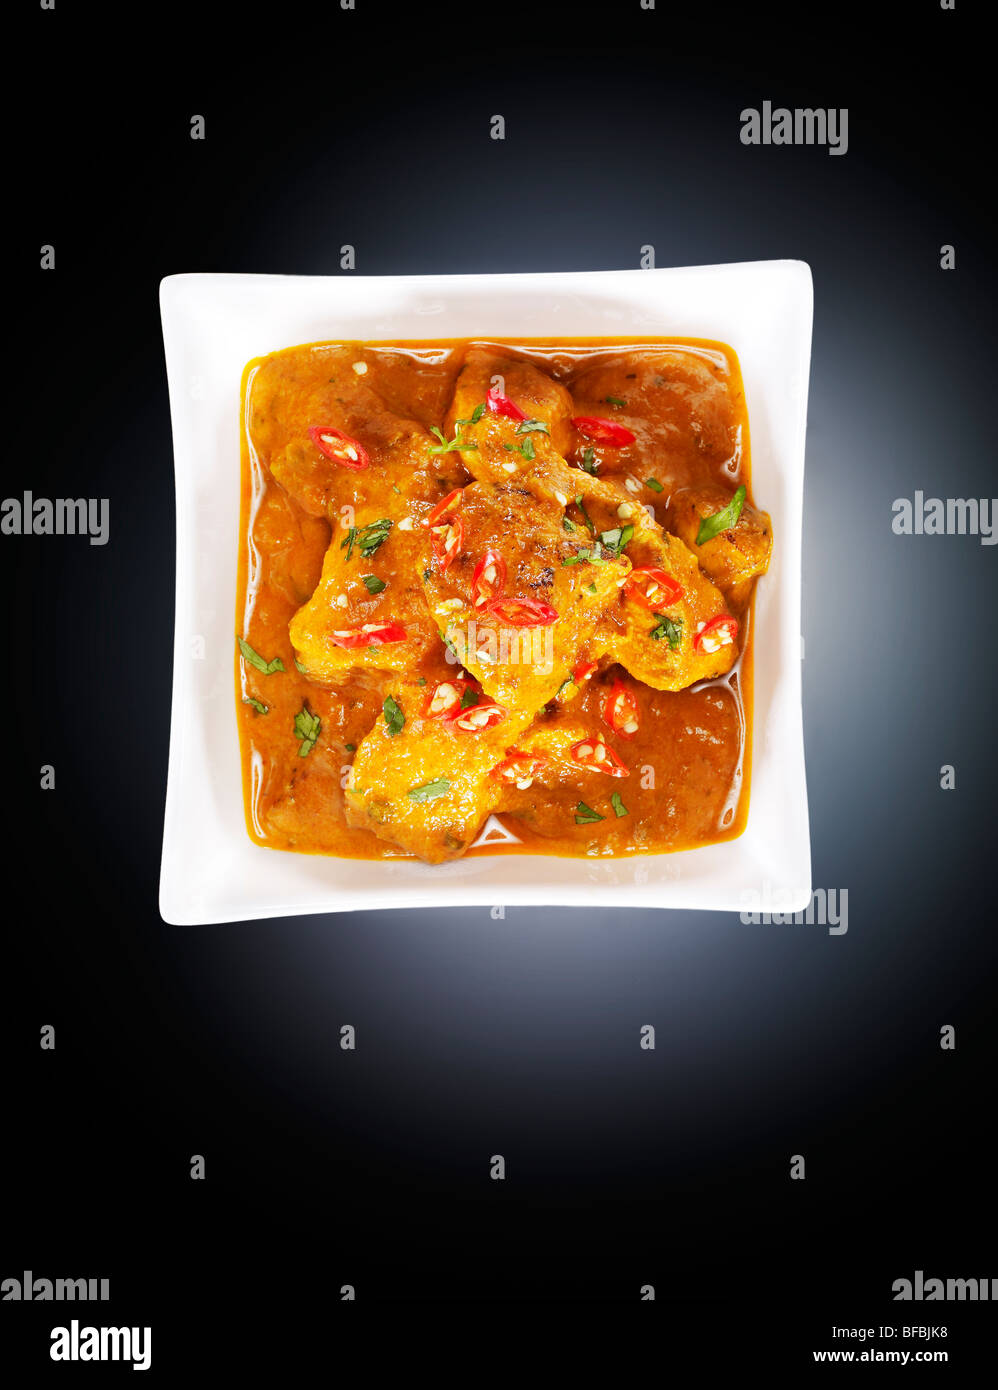 Chicken tikka masala, with tomato cream, butter and red chili - Stock Image